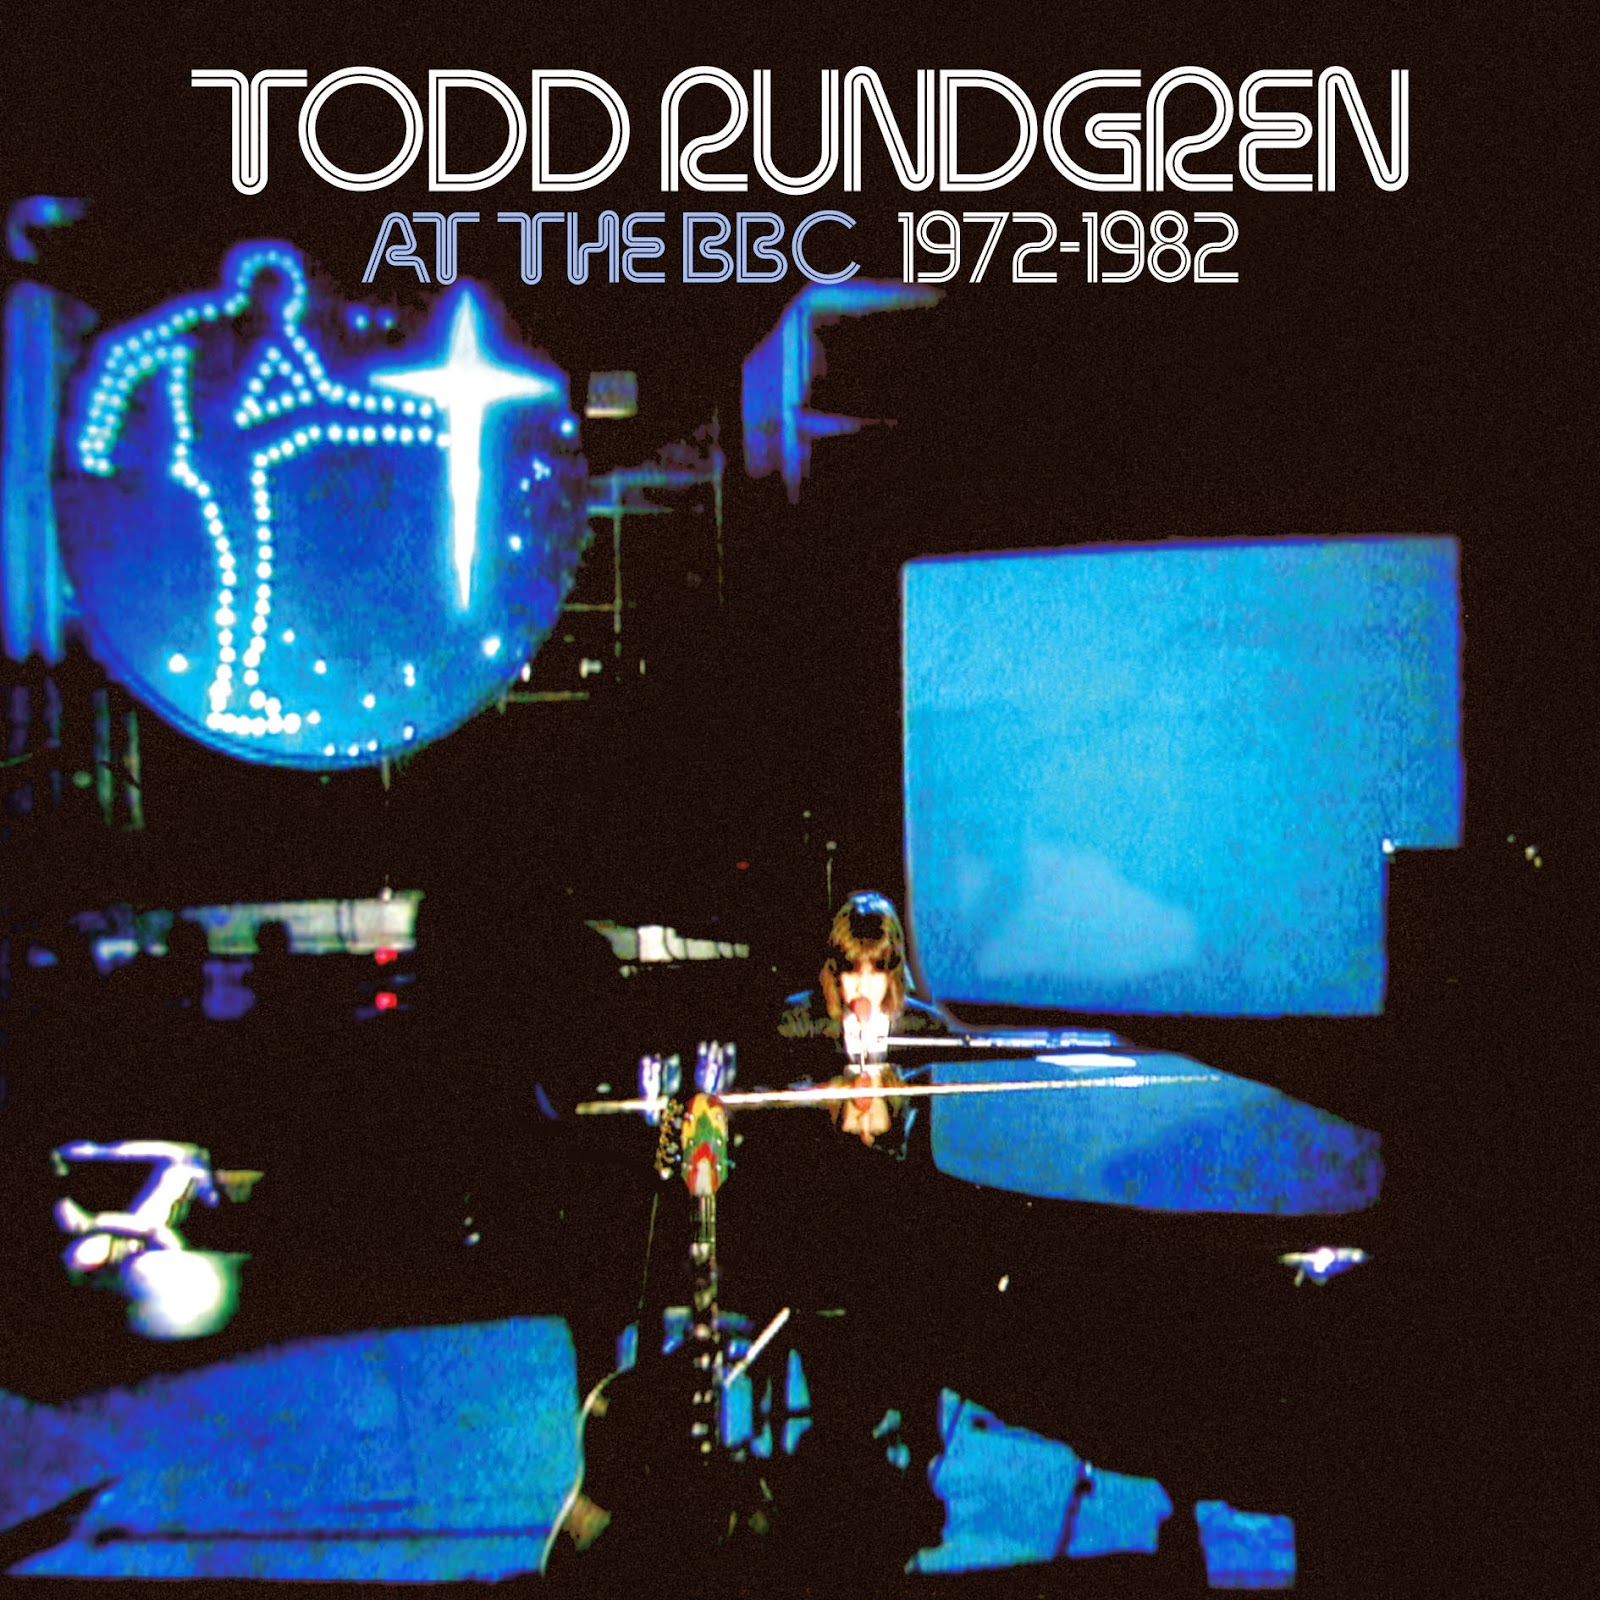 Todd Rundgren's At The BBC 1972-1982